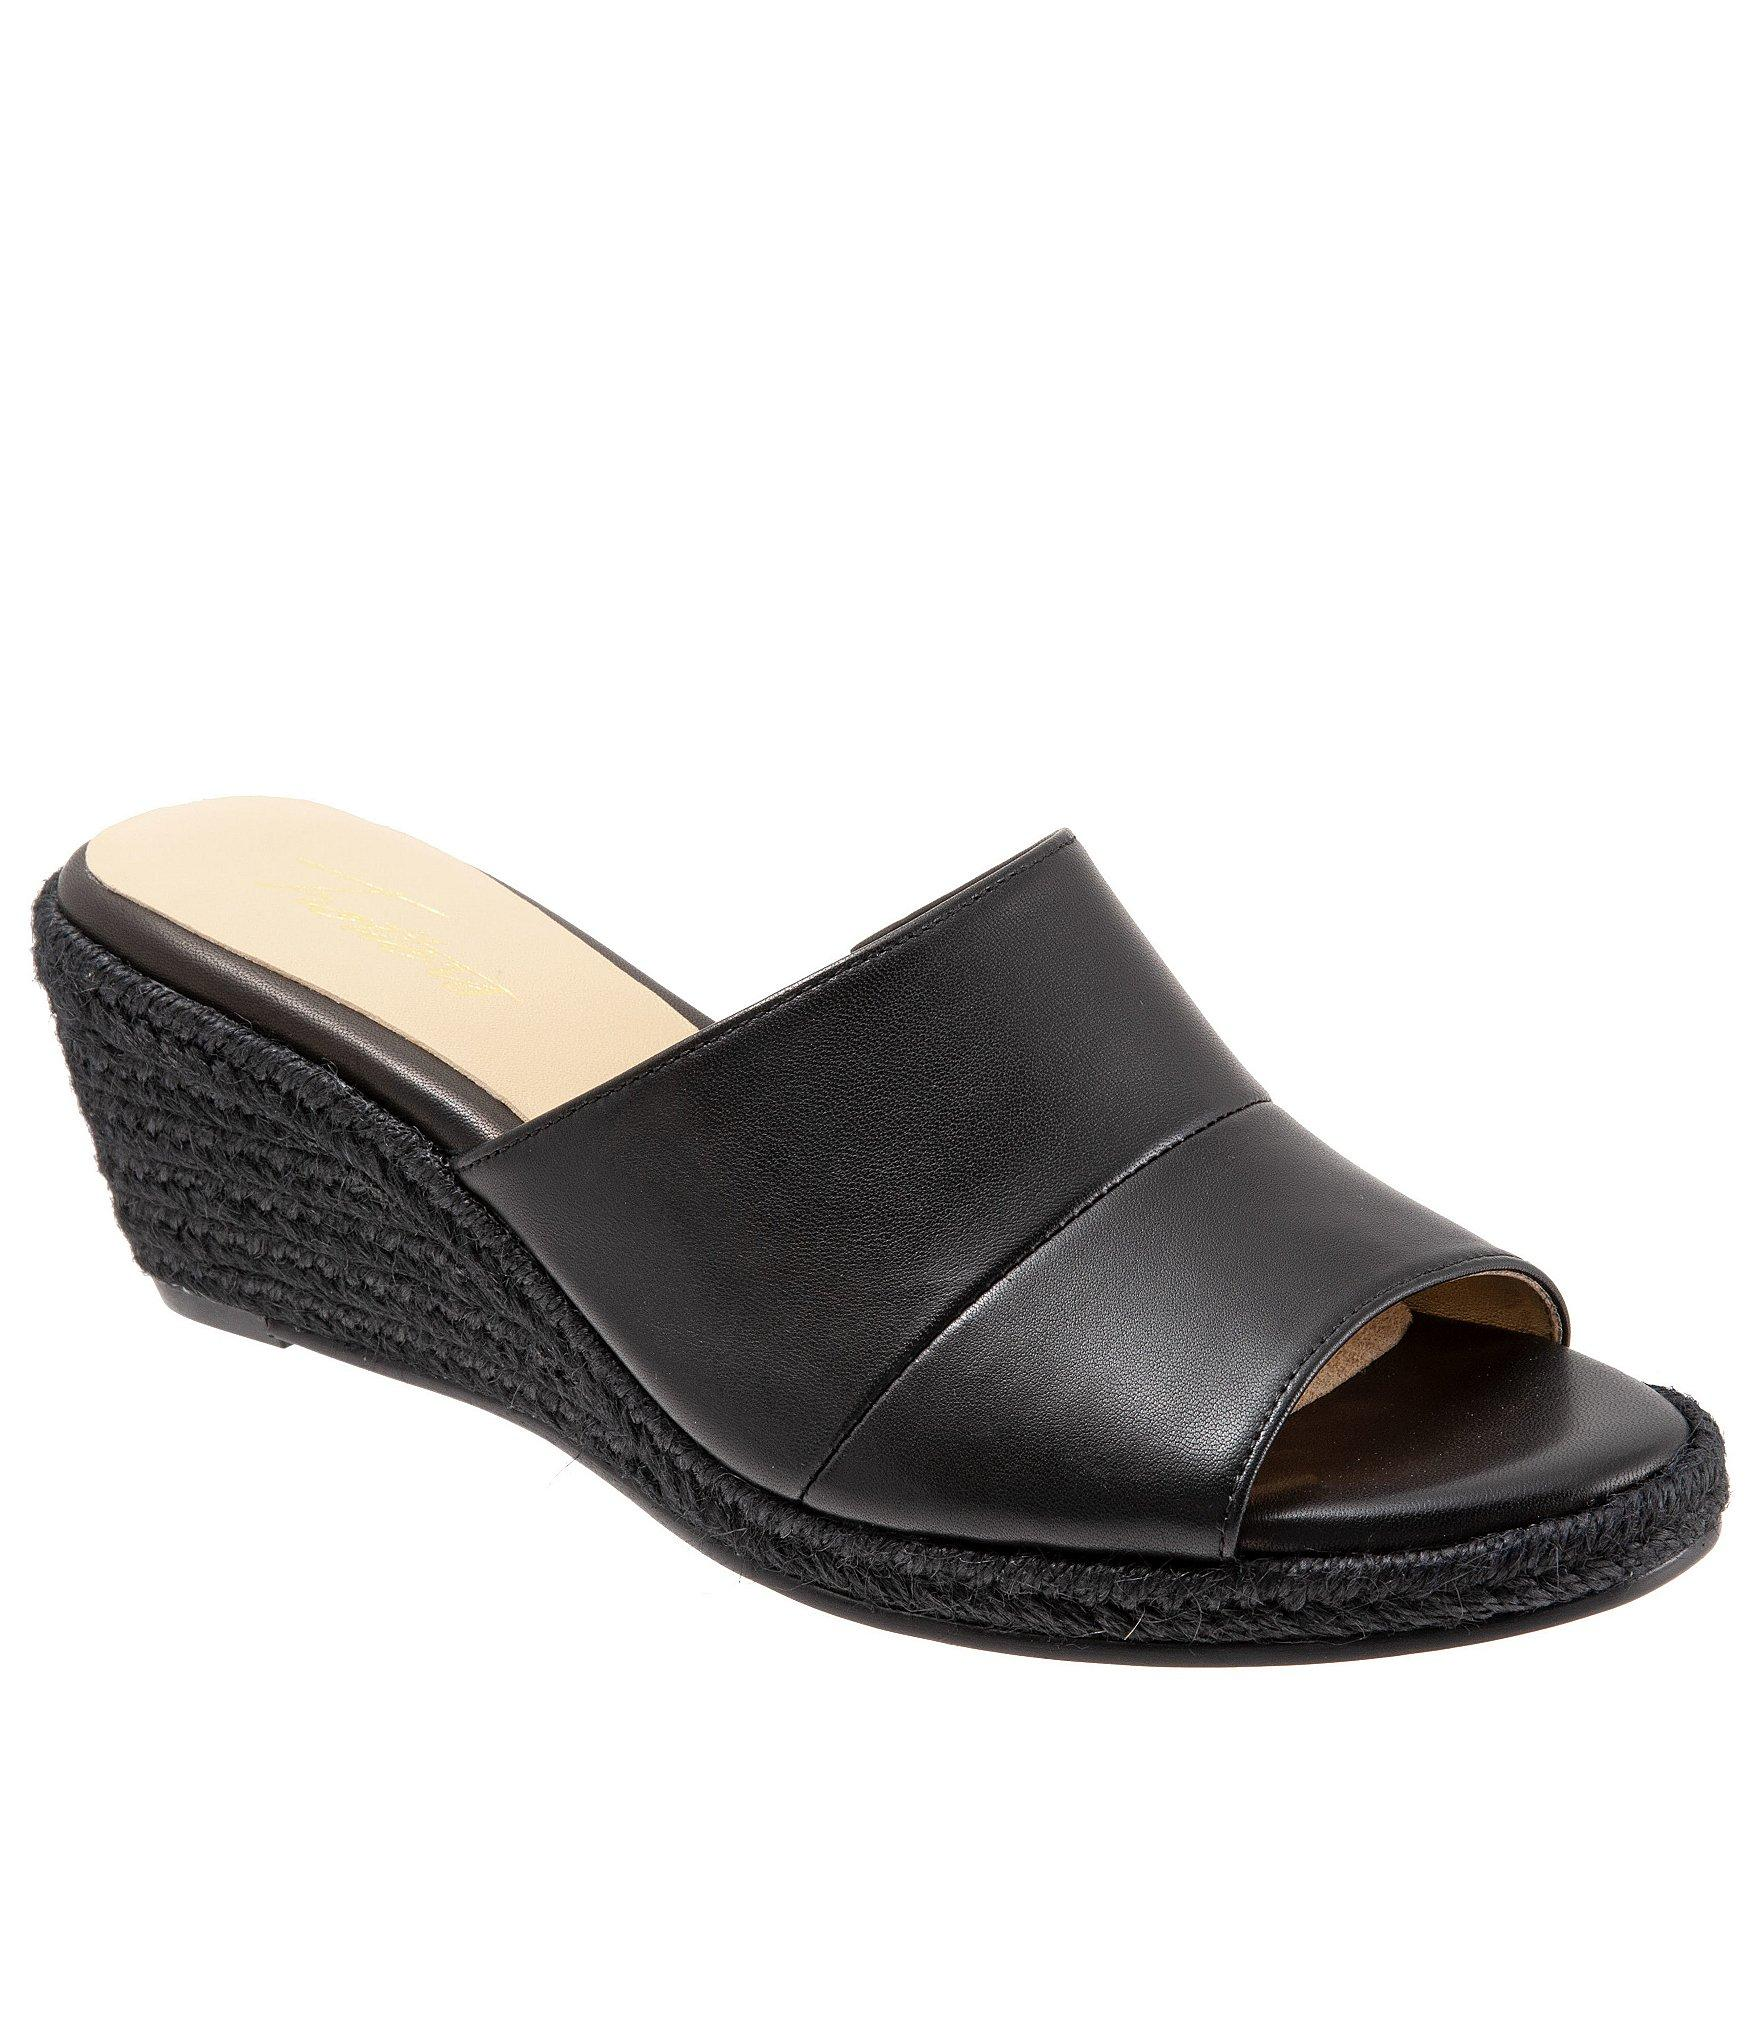 db504ebee3dfe4 Lyst - Trotters Colony Leather Raffia Wedge Slide Sandals in Black